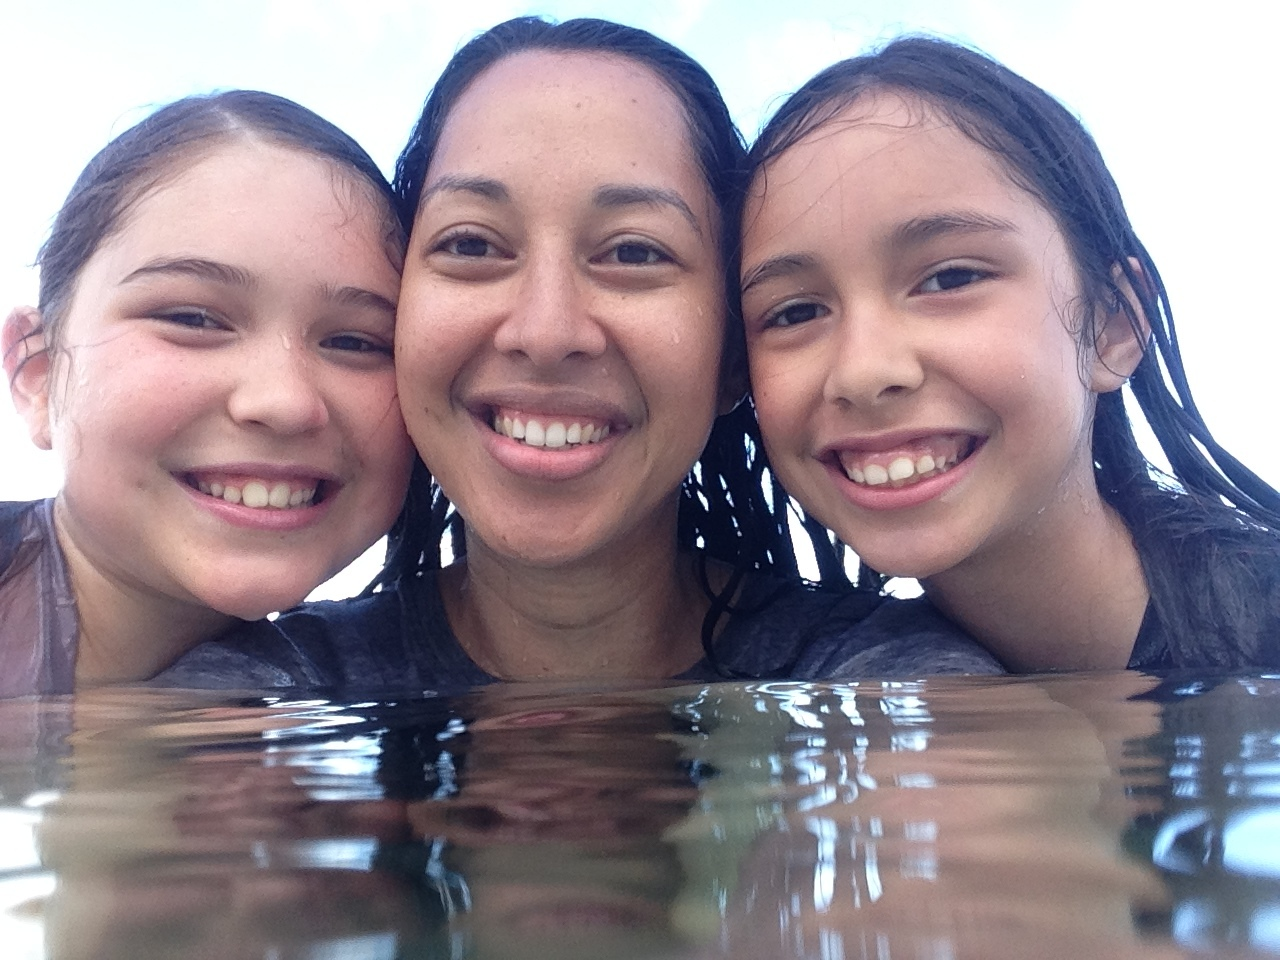 May 2014 (Saipan with my mommy Franicia and sister Pelaiah trying to be happy sometimes since we were there for my grandma Anicia's funeral 😢😭)